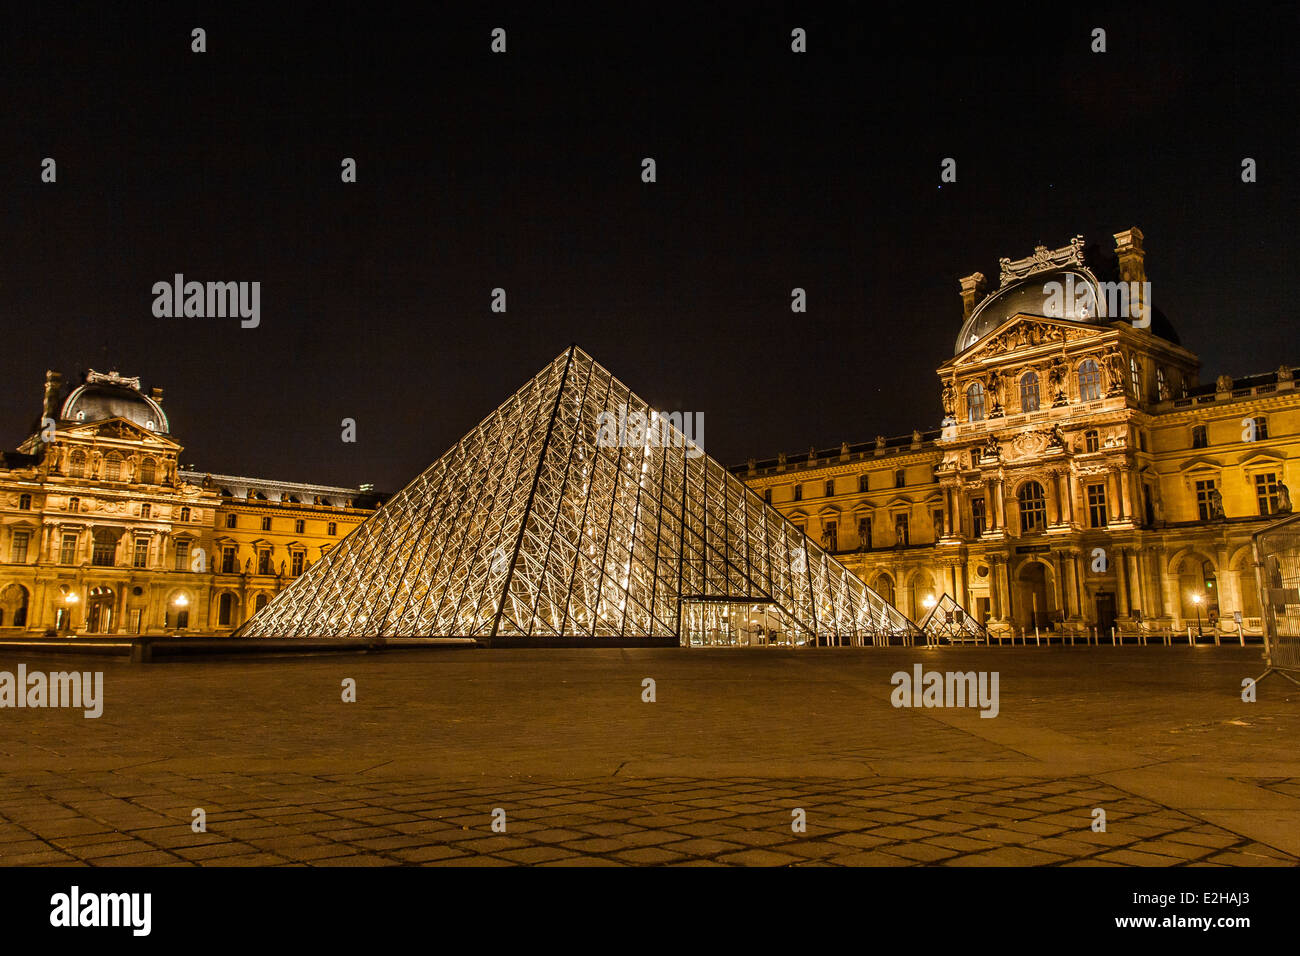 pyramid lit up night photos pyramid lit up night images alamy. Black Bedroom Furniture Sets. Home Design Ideas